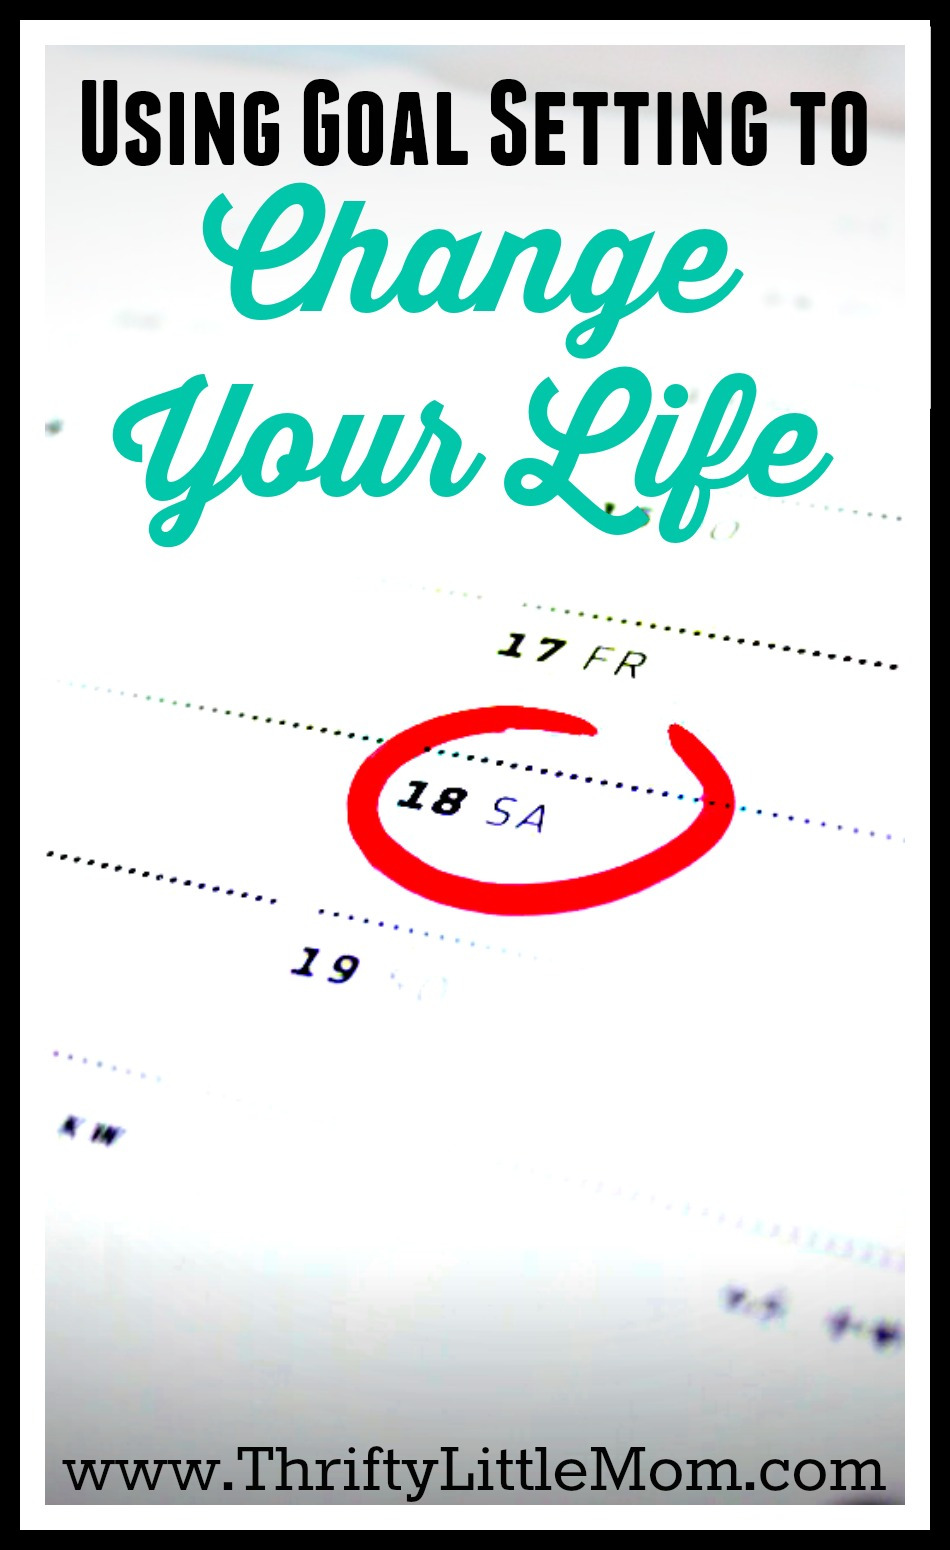 Using Goal Setting To Change Your Life